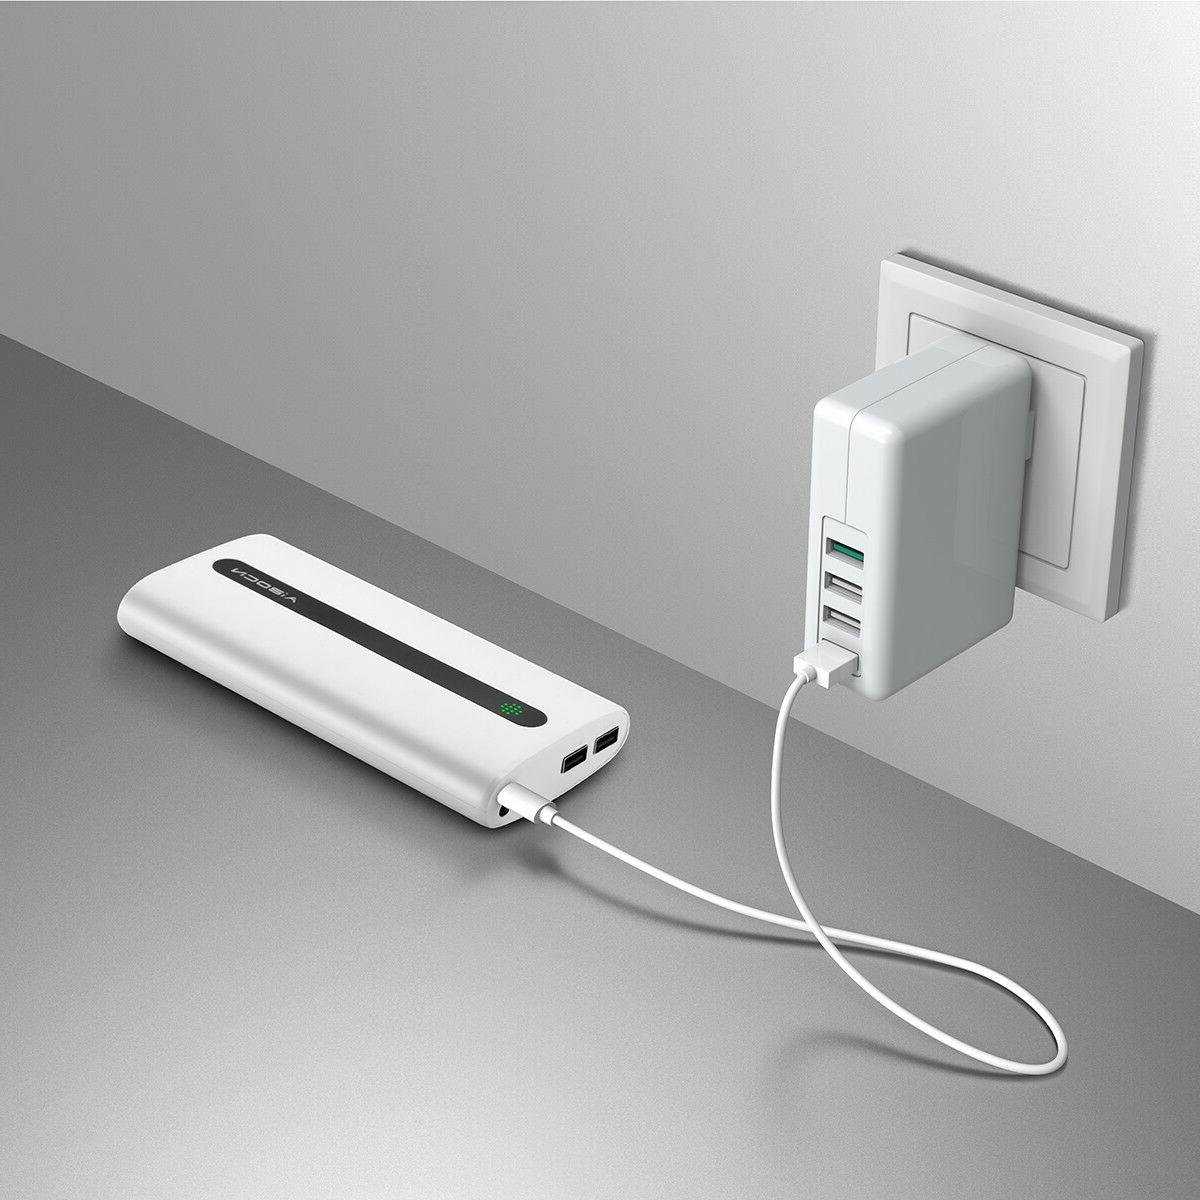 Aibocn 20000mAh Power Bank Dual USB Phone with Torch